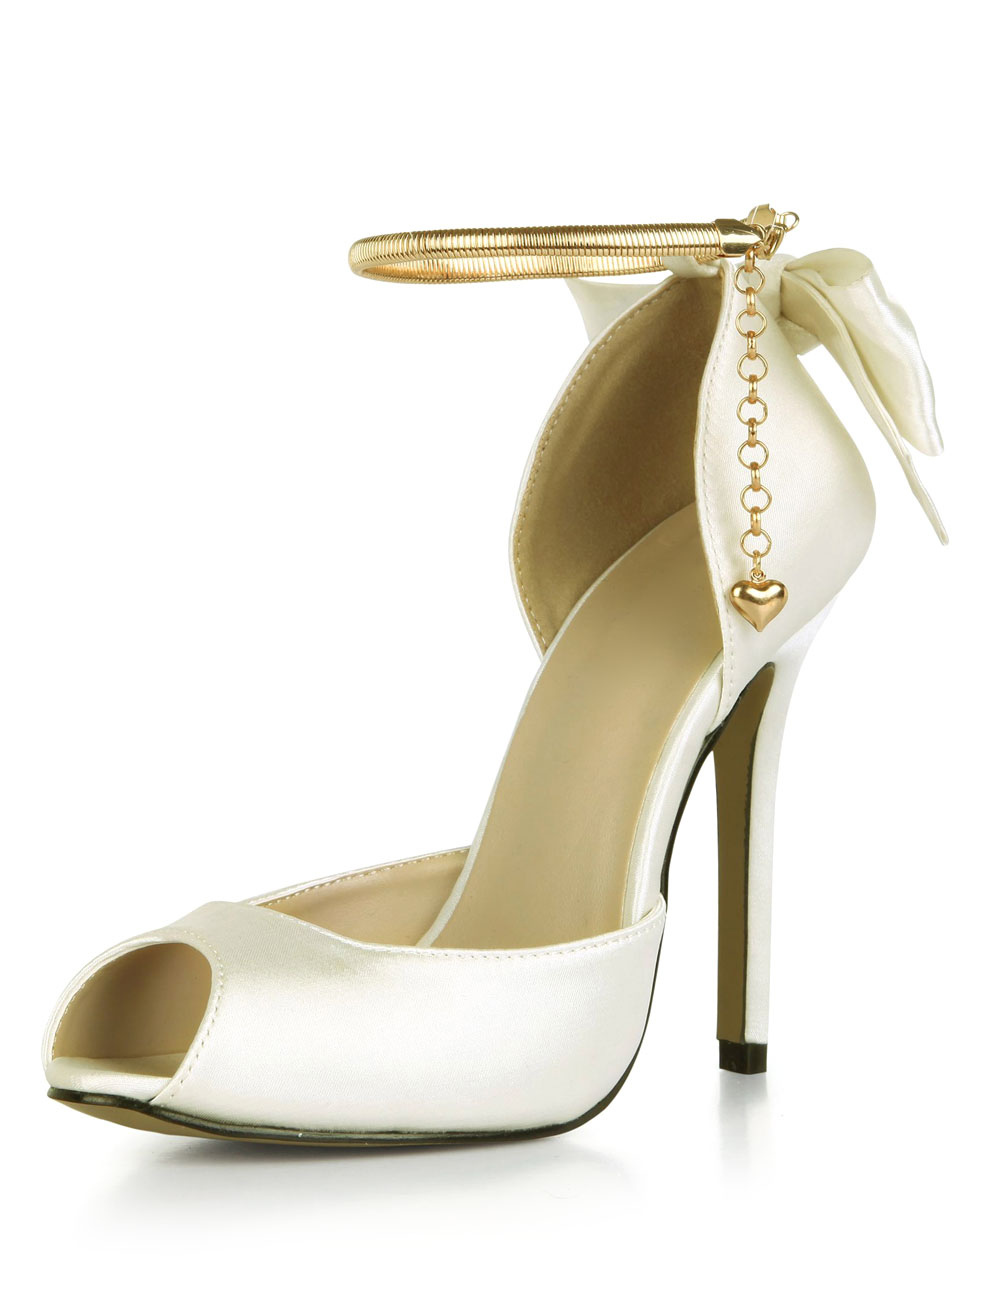 Ivory Wedding Shoes Satin High Heel Peep Toe Bow Ankle Strap Bridal Pumps